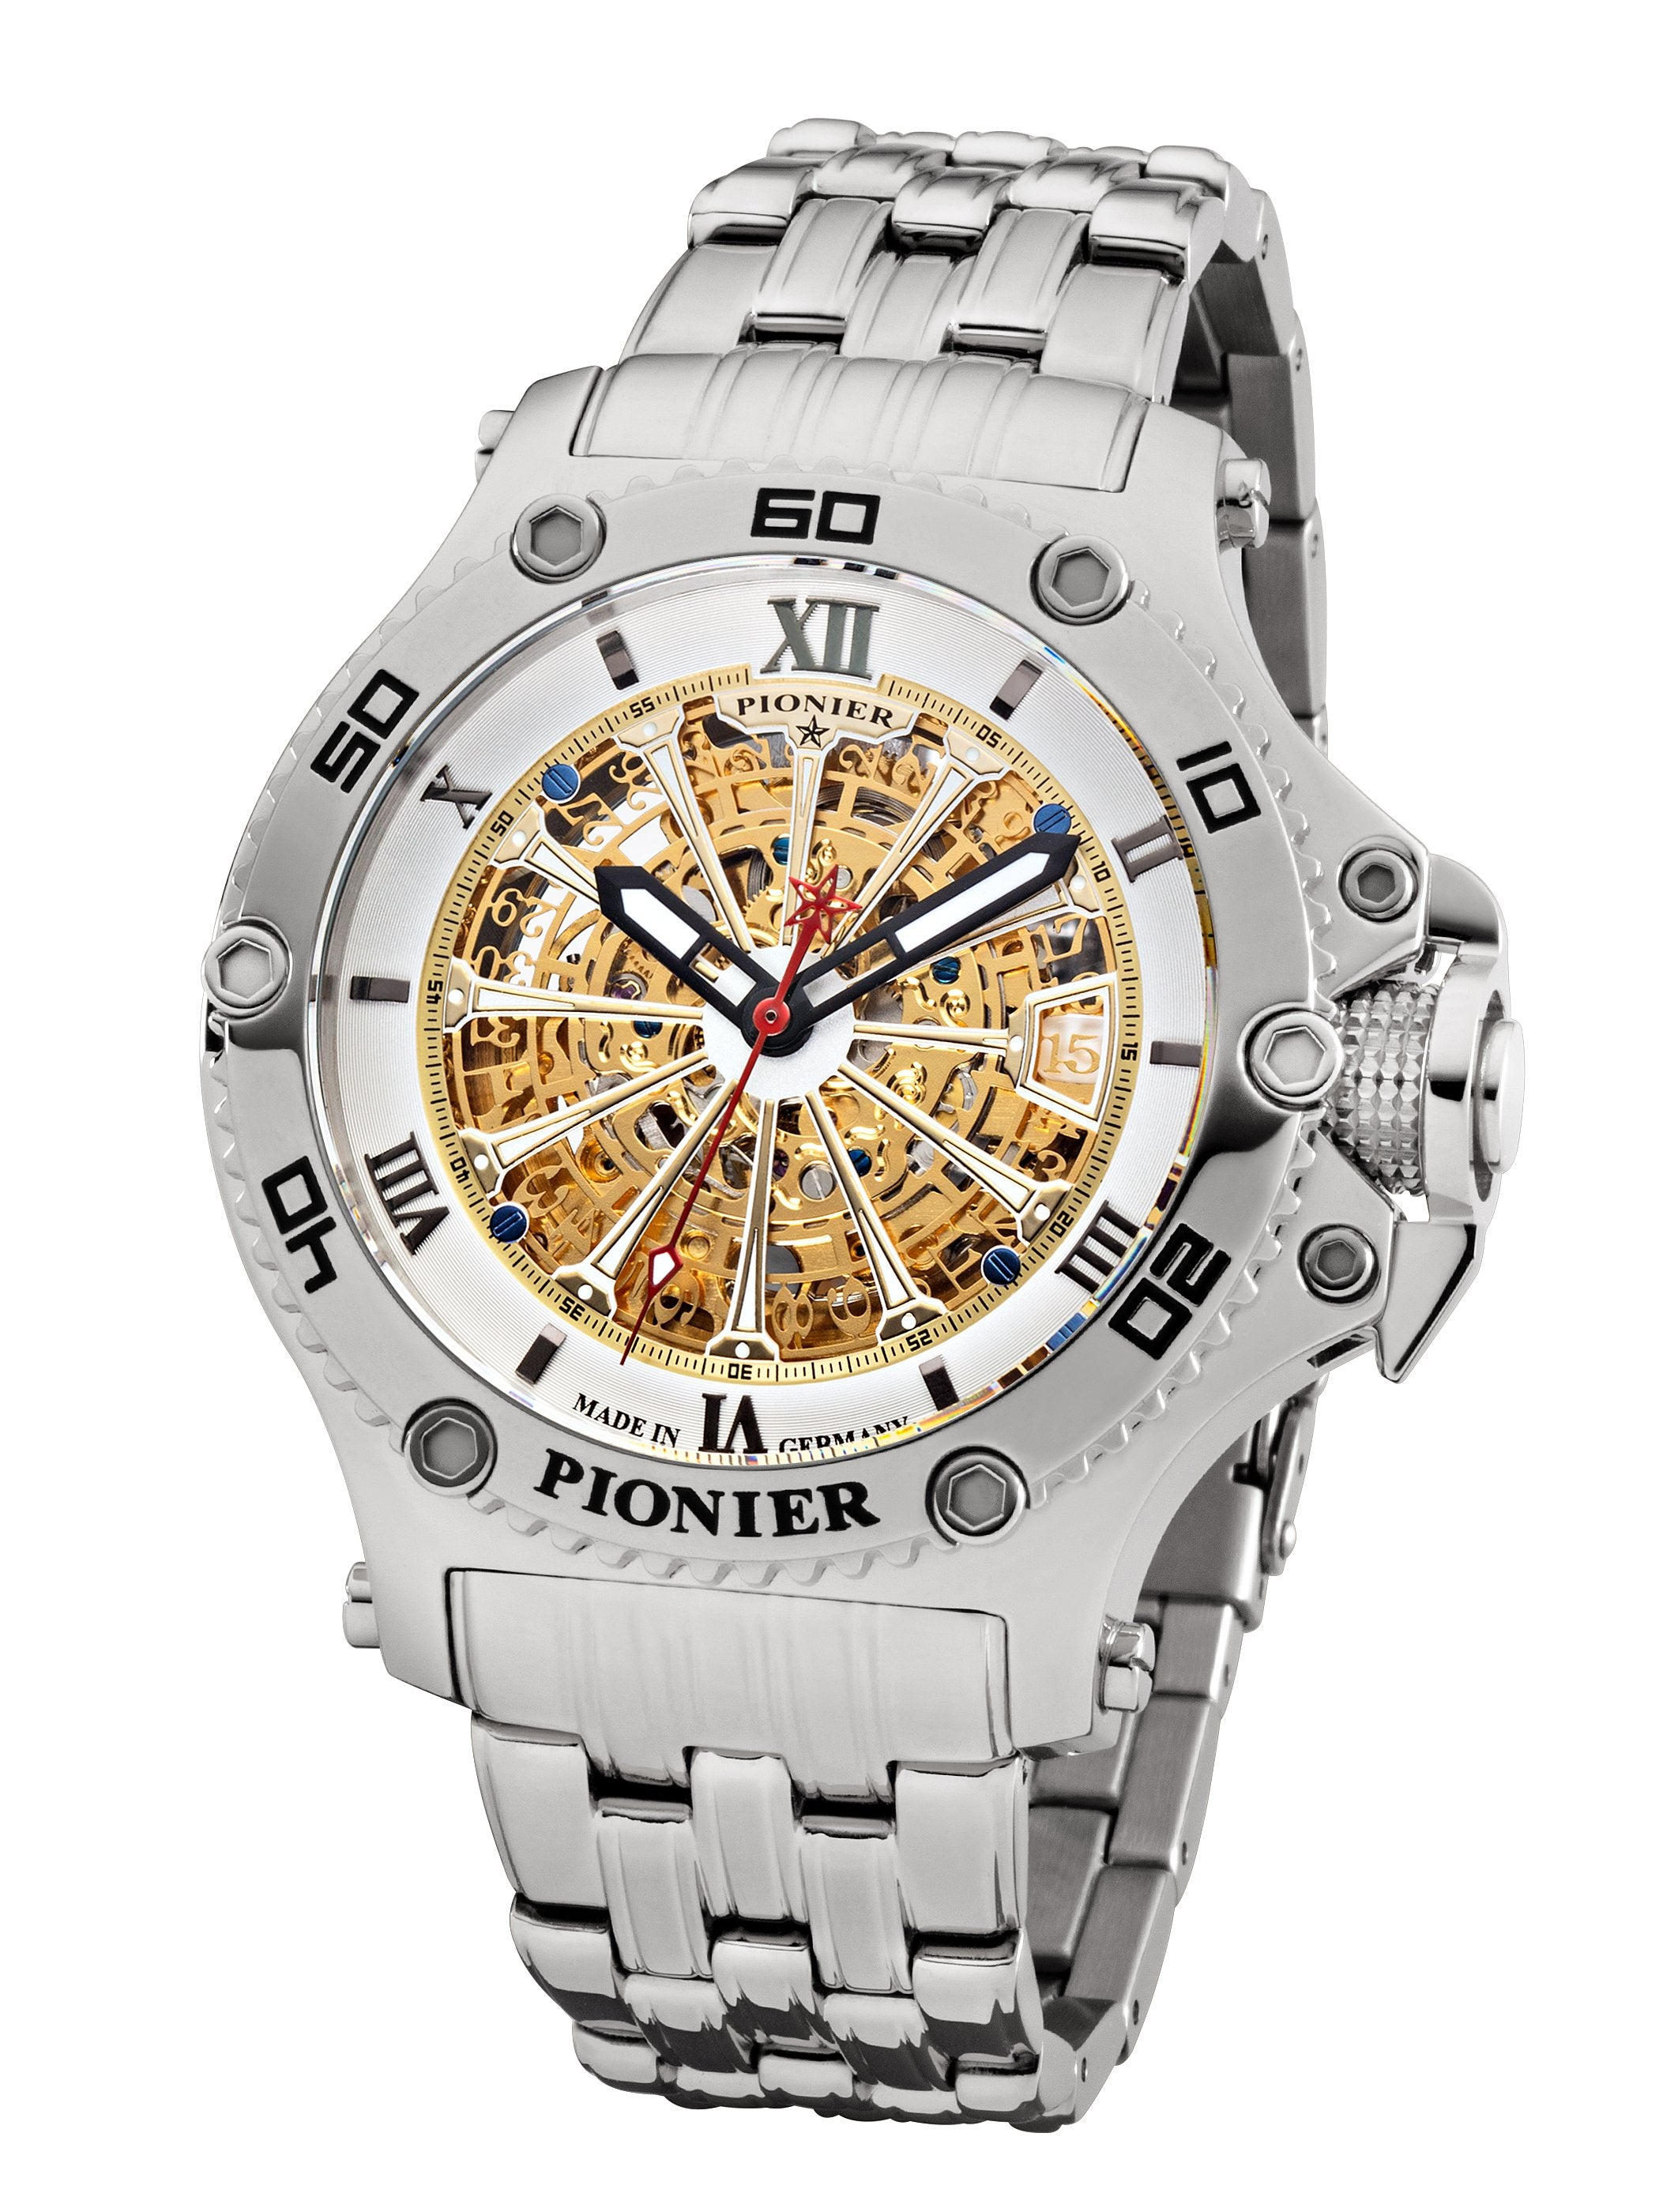 Barcelona Pionier GM-516-7 Made in Germany